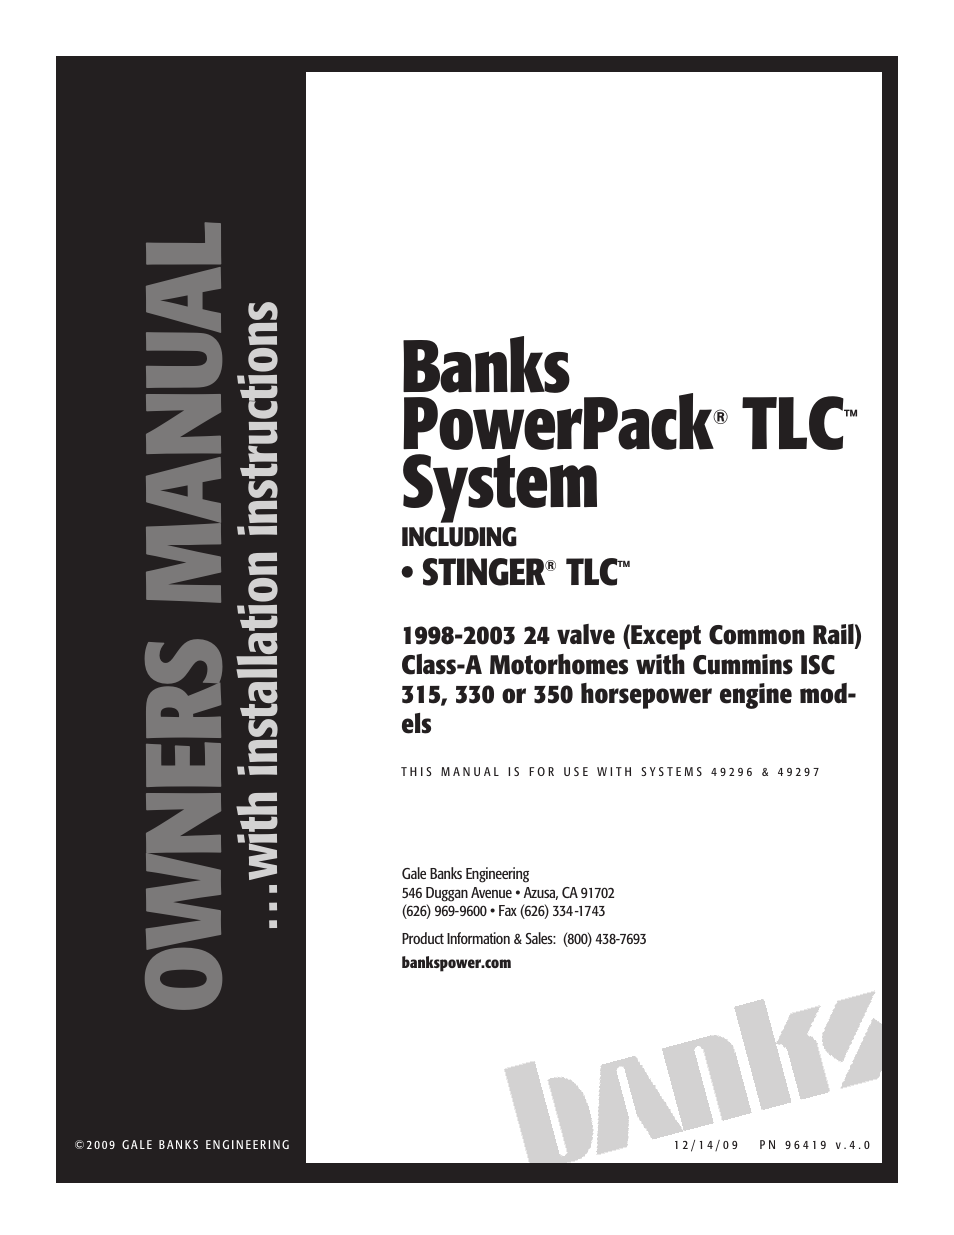 Banks Power Cummins Motorhomes: (Diesel '98 - 03 ISC 8.3L) PowerPack TLC &  Stinger TLC systems '98-03 8.3L, 315, 330 or 350-hp, 24-valve, Class-A MH,  ...